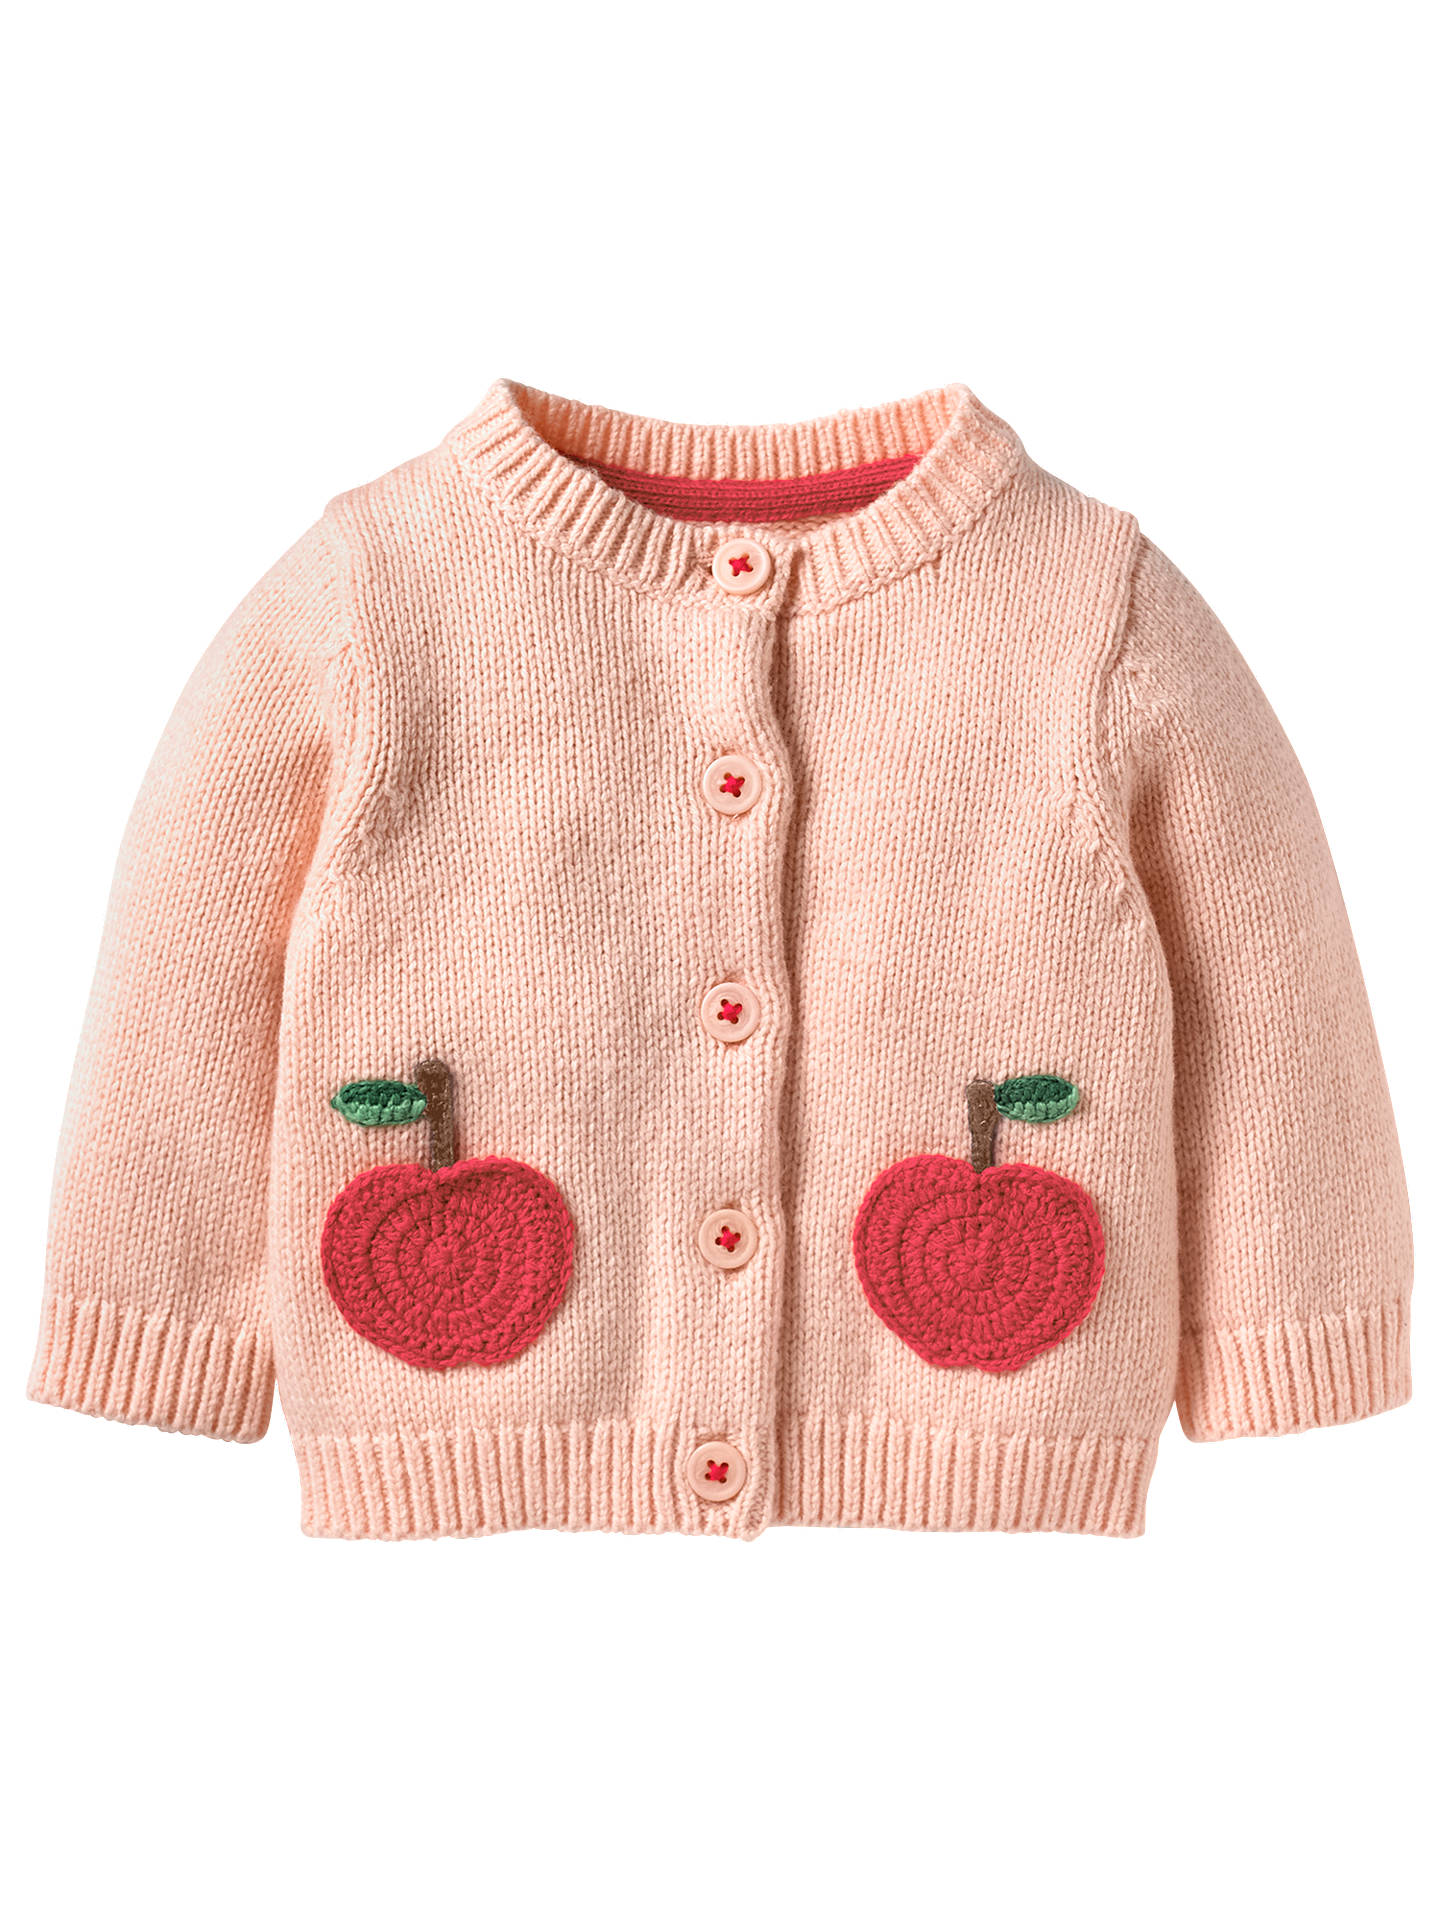 Mini Boden Baby Chara Apple Crochet Cardigan Provence Dusty Pink At